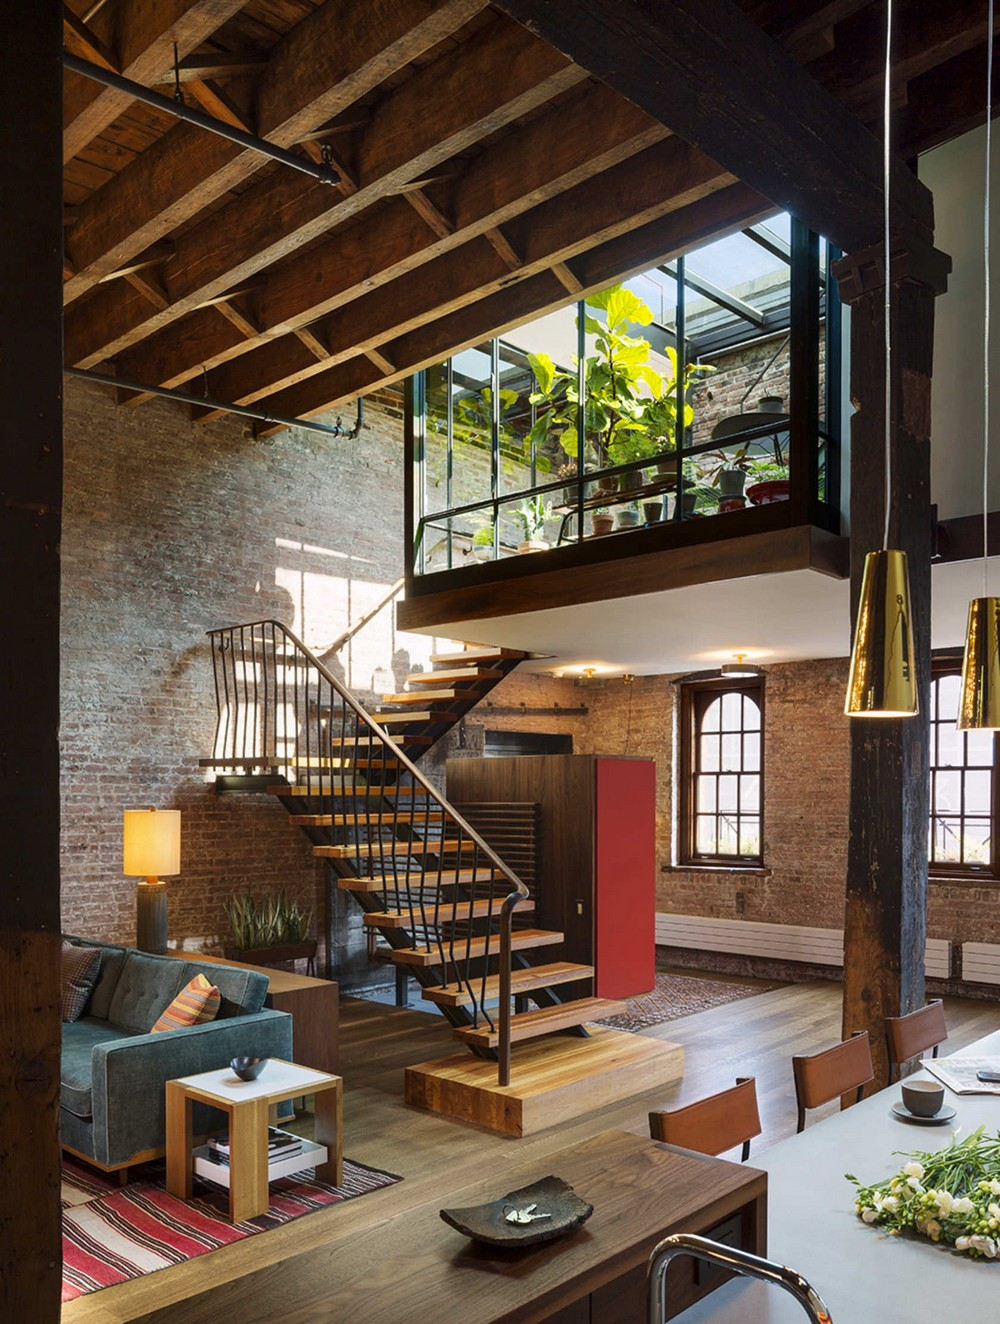 Luxury Real Estate 5 Extremely Cool New York Industrial Lofts (4) Industrial Lofts Luxury Real Estate: 5 Extremely Cool New York Industrial Lofts Luxury Real Estate 5 Extremely Cool New York Industrial Lofts 4